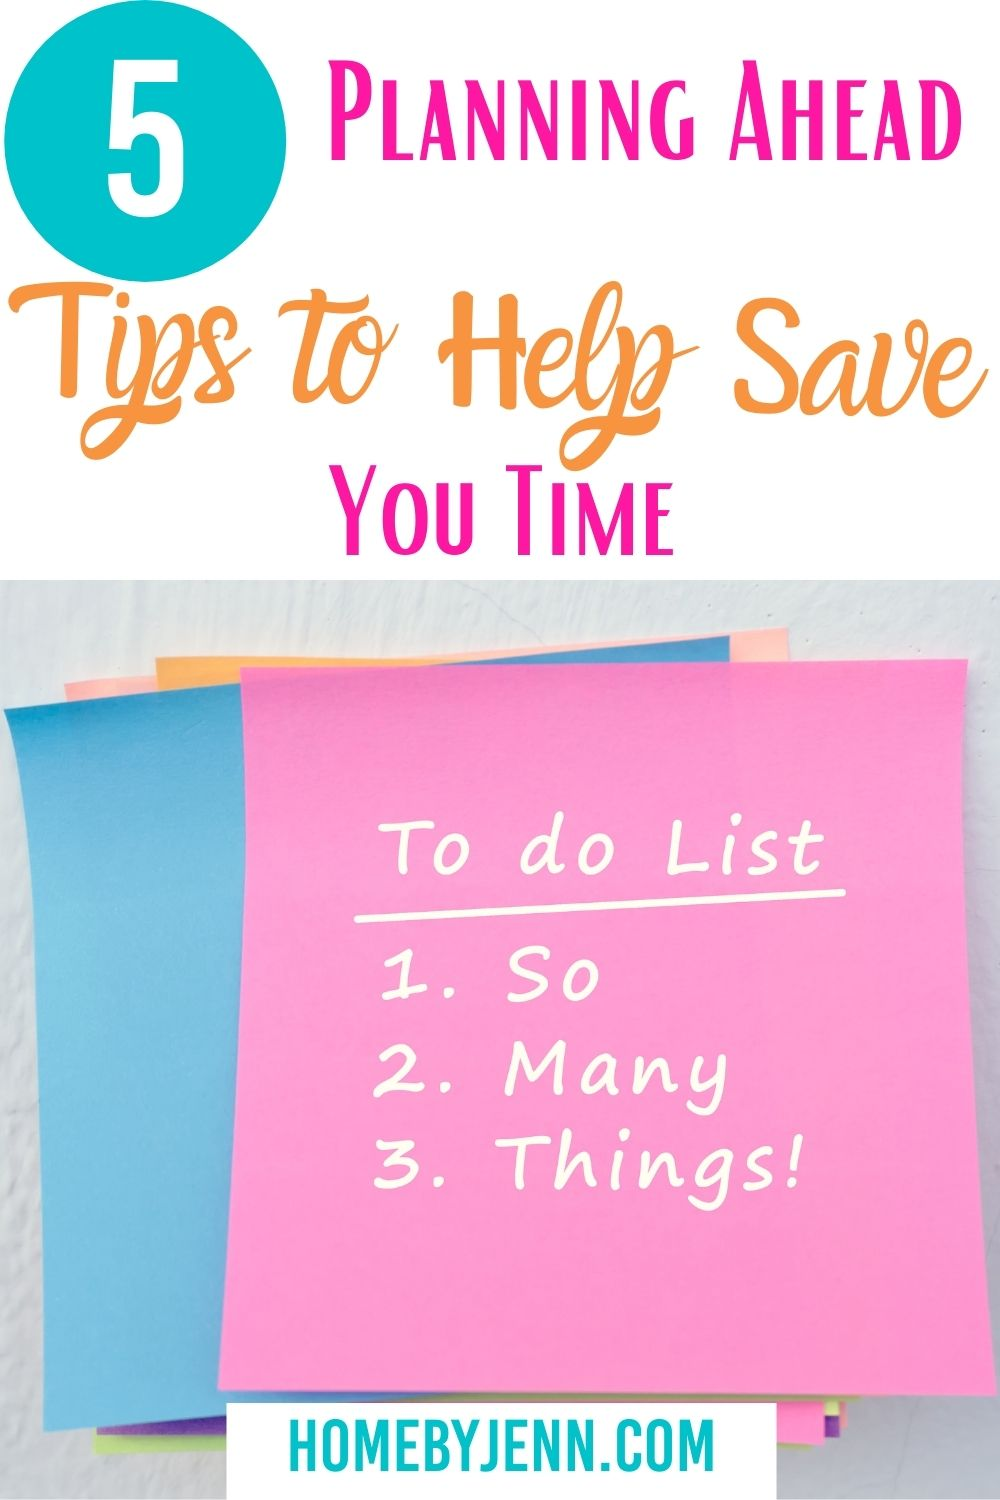 When you plan out what needs to be done in advance you know exactly what needs to be done when. Learn tips on how to plan ahead and stay on track. #planning #gettingorganized #organizer #mealplan #howto #saveyourday via @homebyjenn